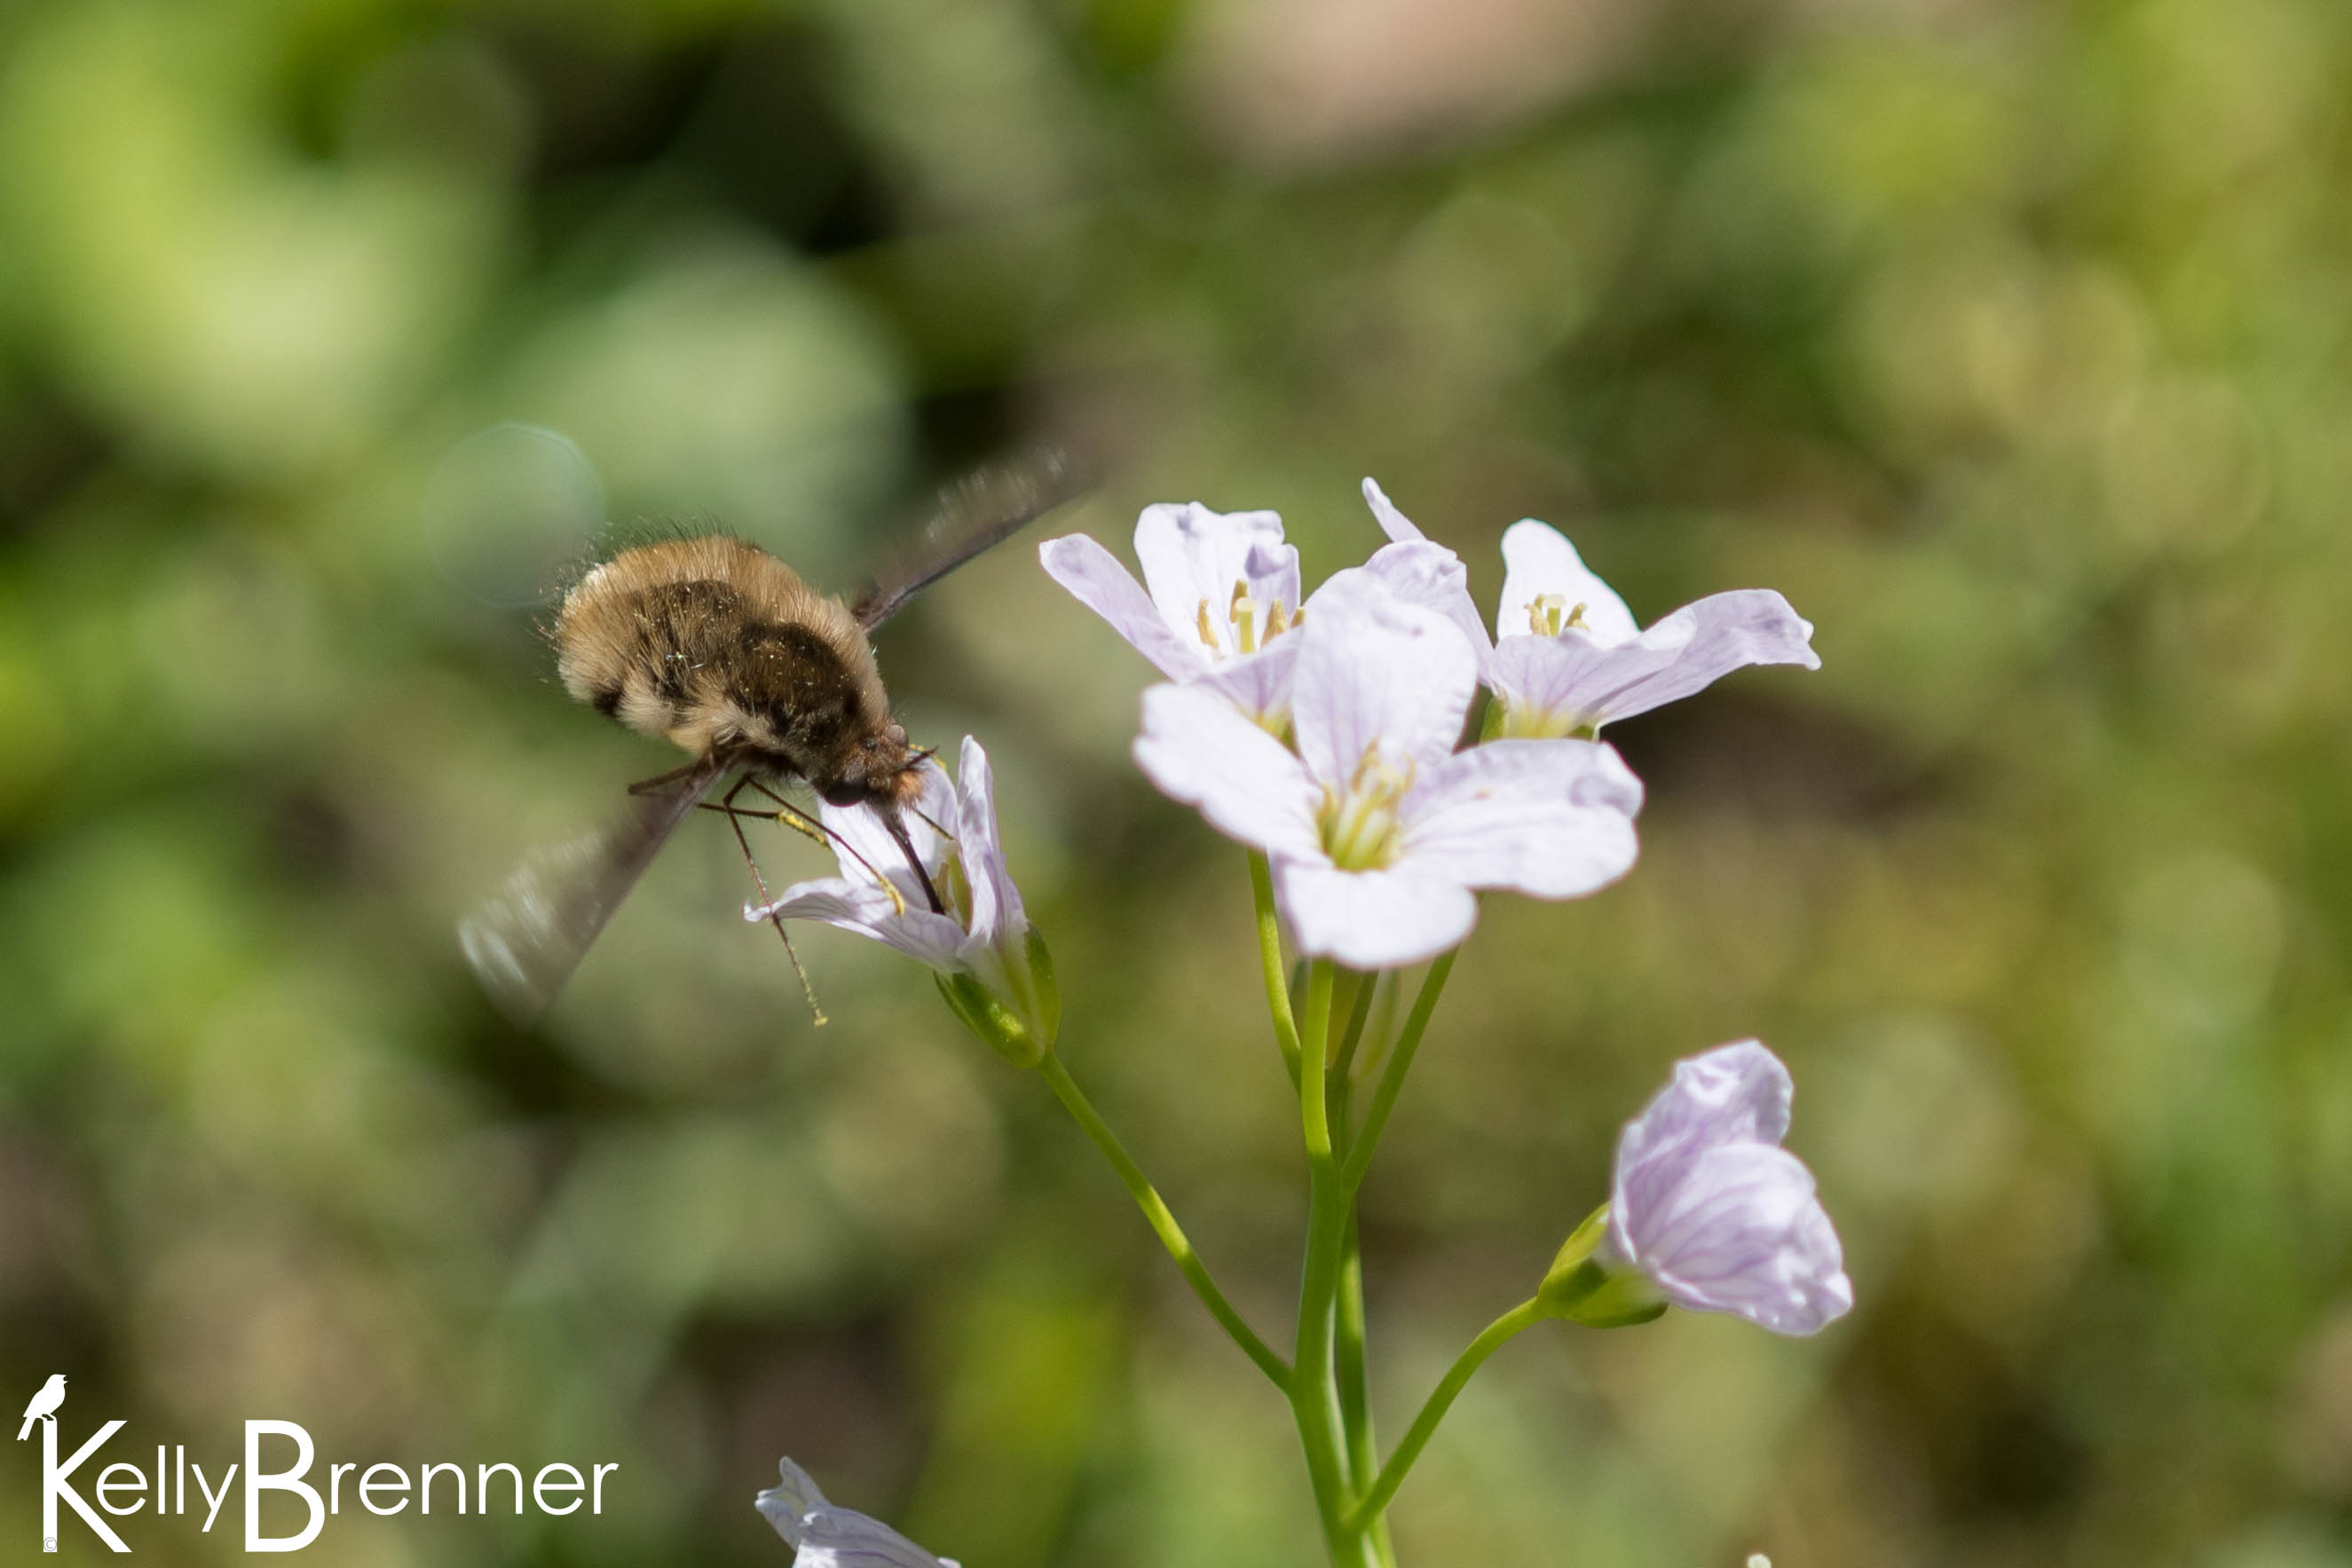 Field Journal: Arboretum Bee Flies